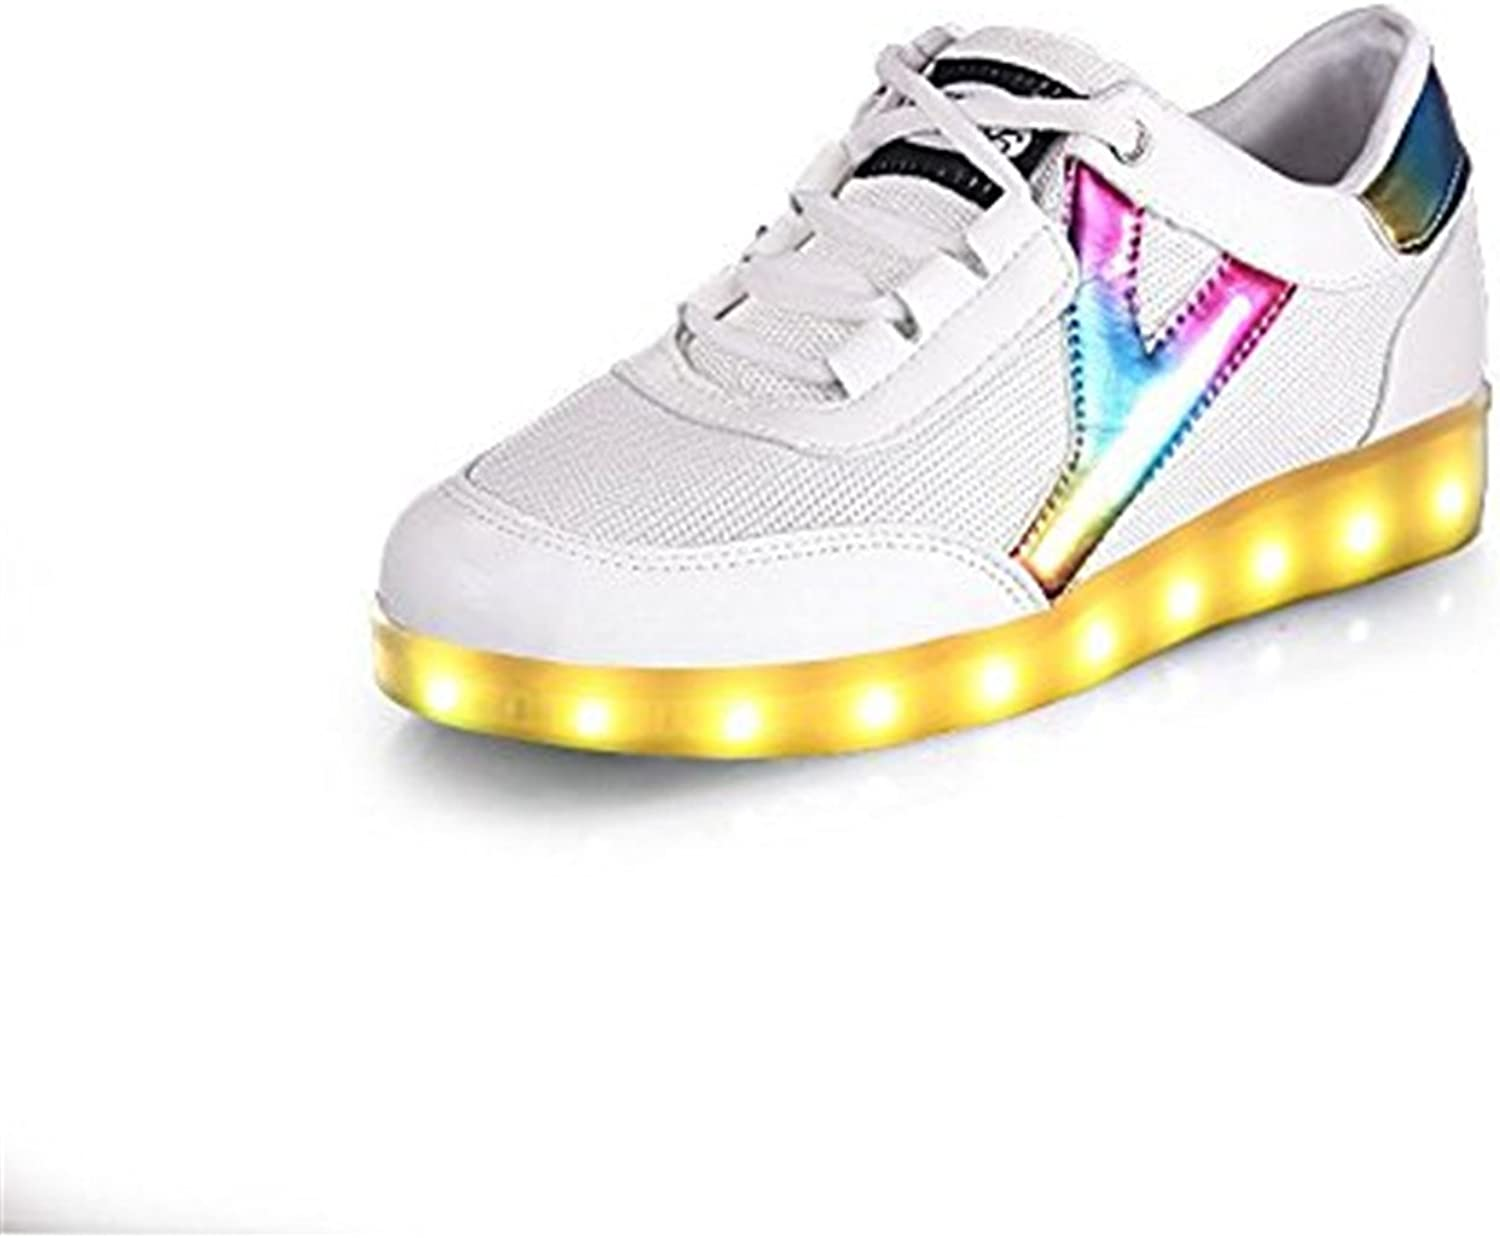 Reinhar Prevailing 7 colors LED Luminous shoes Unisex Sneakers Men & Women Sneakers USB Charging Light shoes colorful Glowing Leisure Flat shoes